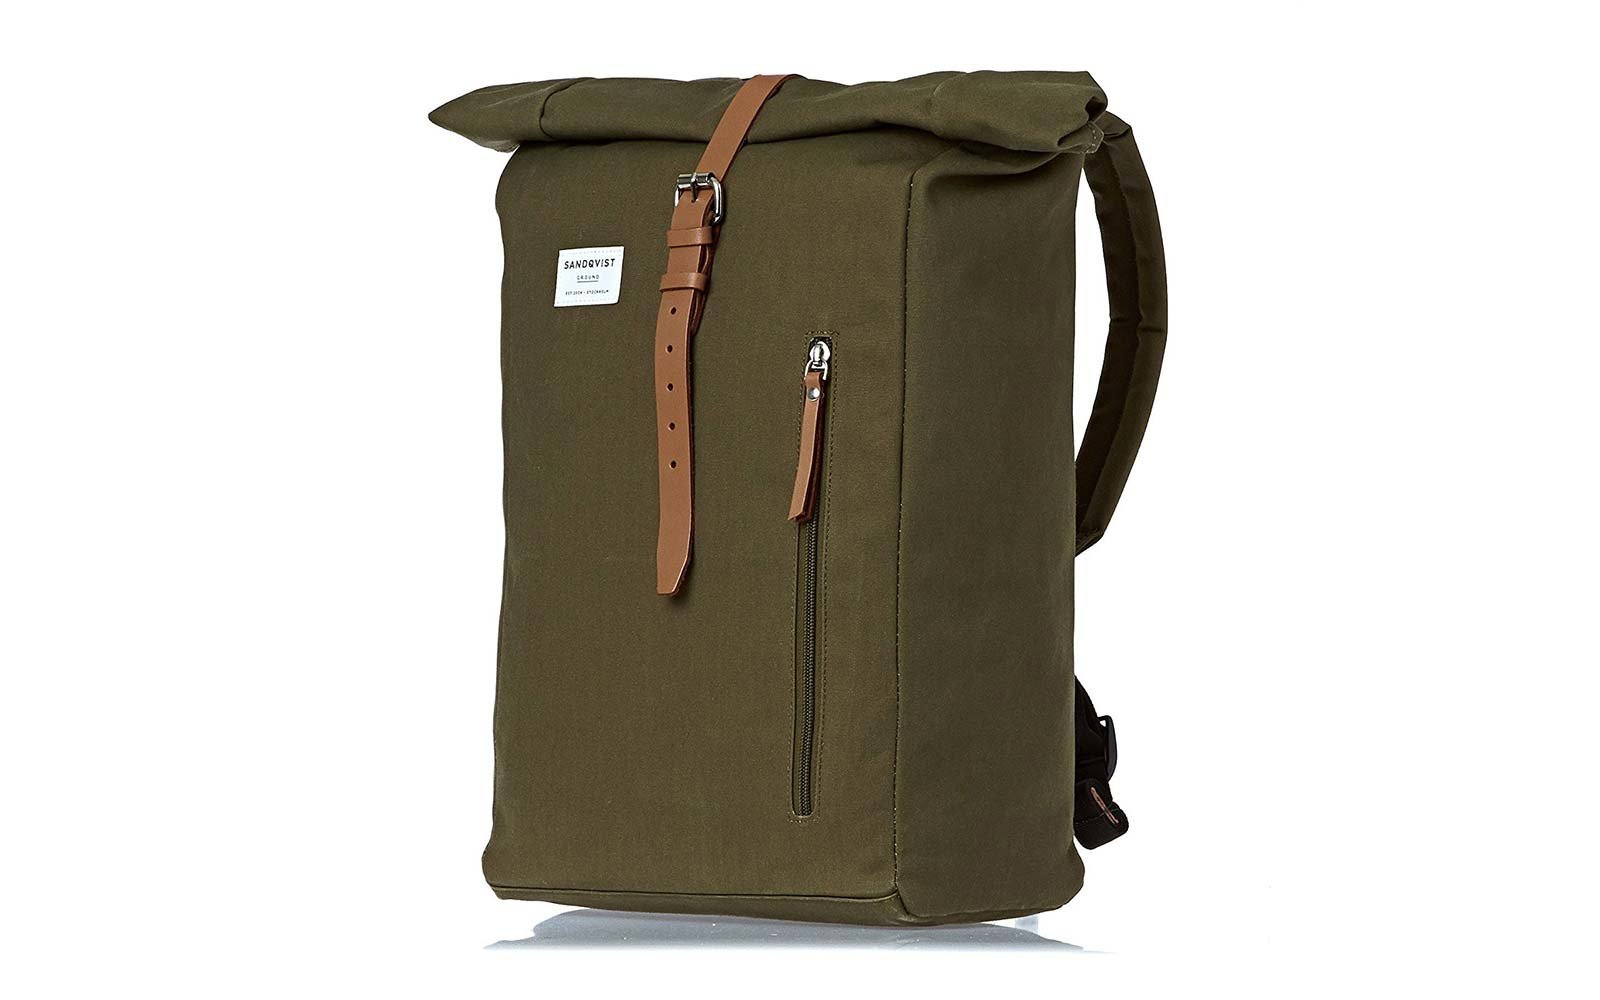 sandqvist travel backpack